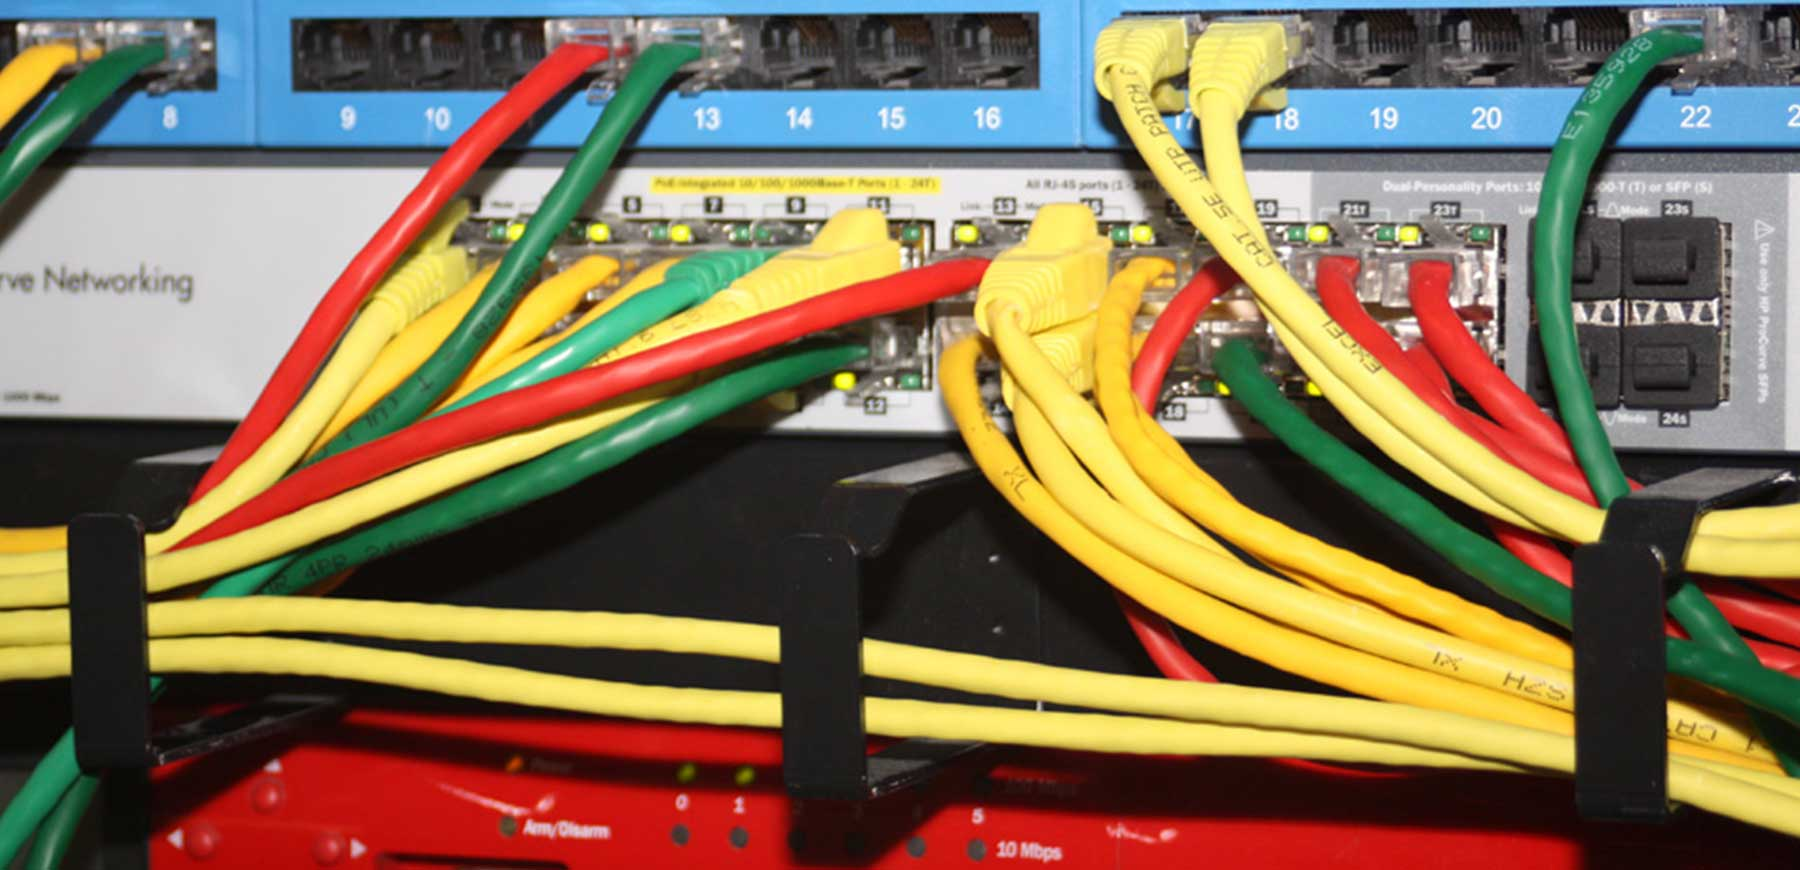 electrical and data networks are like the blood vessels of a modern school,  unseen but essential to daily life  trusol excels in data network cabling